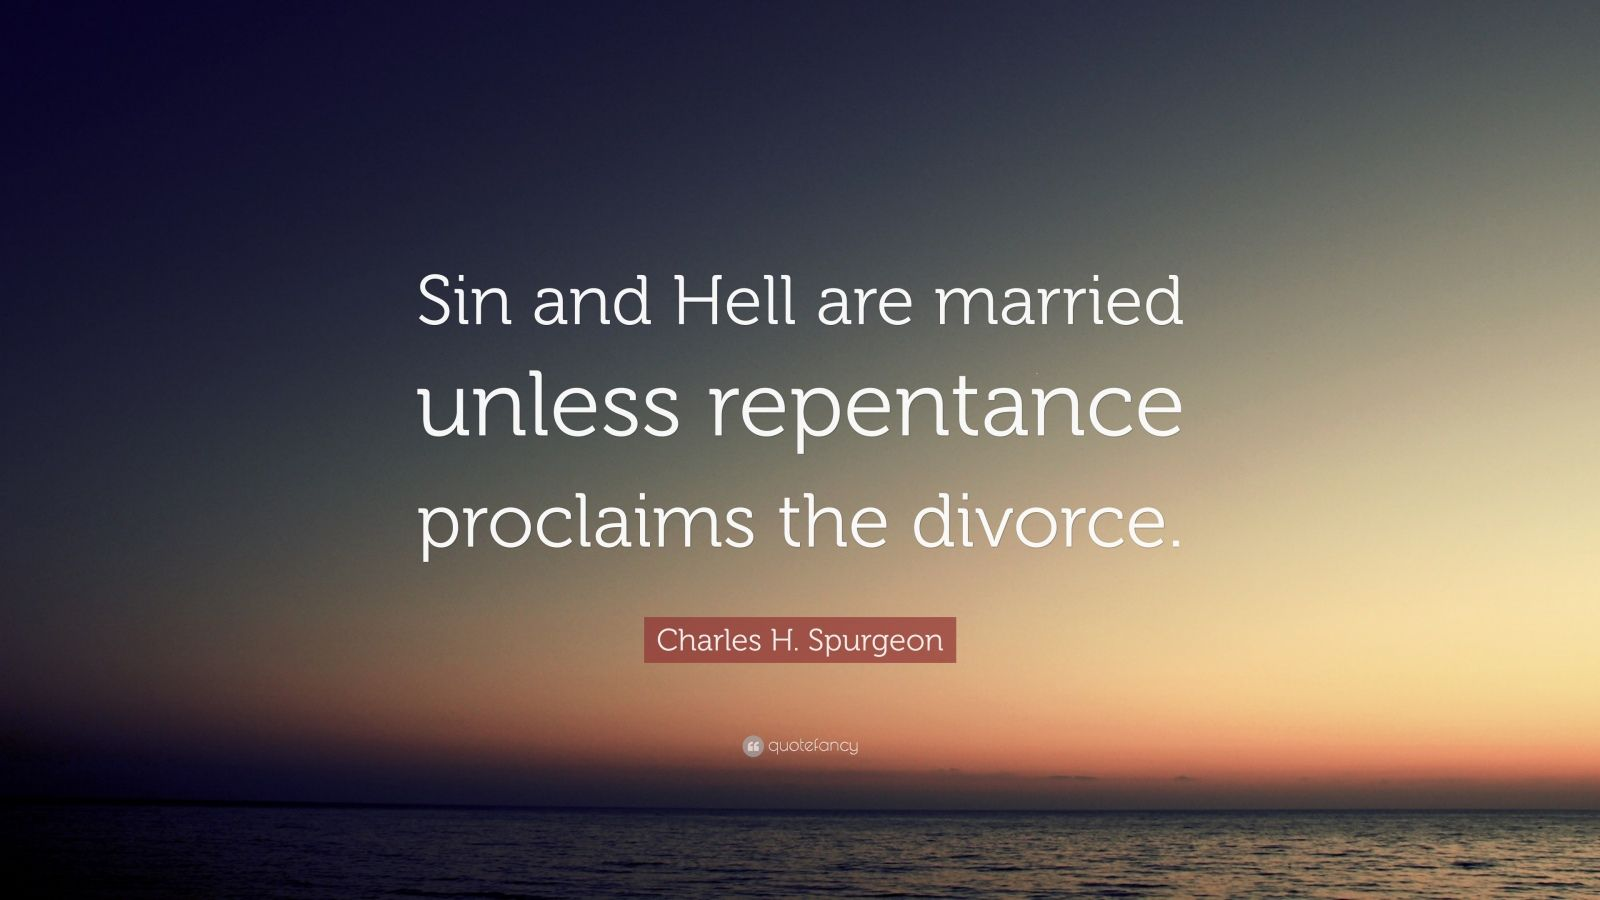 """Charles H. Spurgeon Quote: """"Sin and Hell are married unless repentance proclaims the divorce."""""""